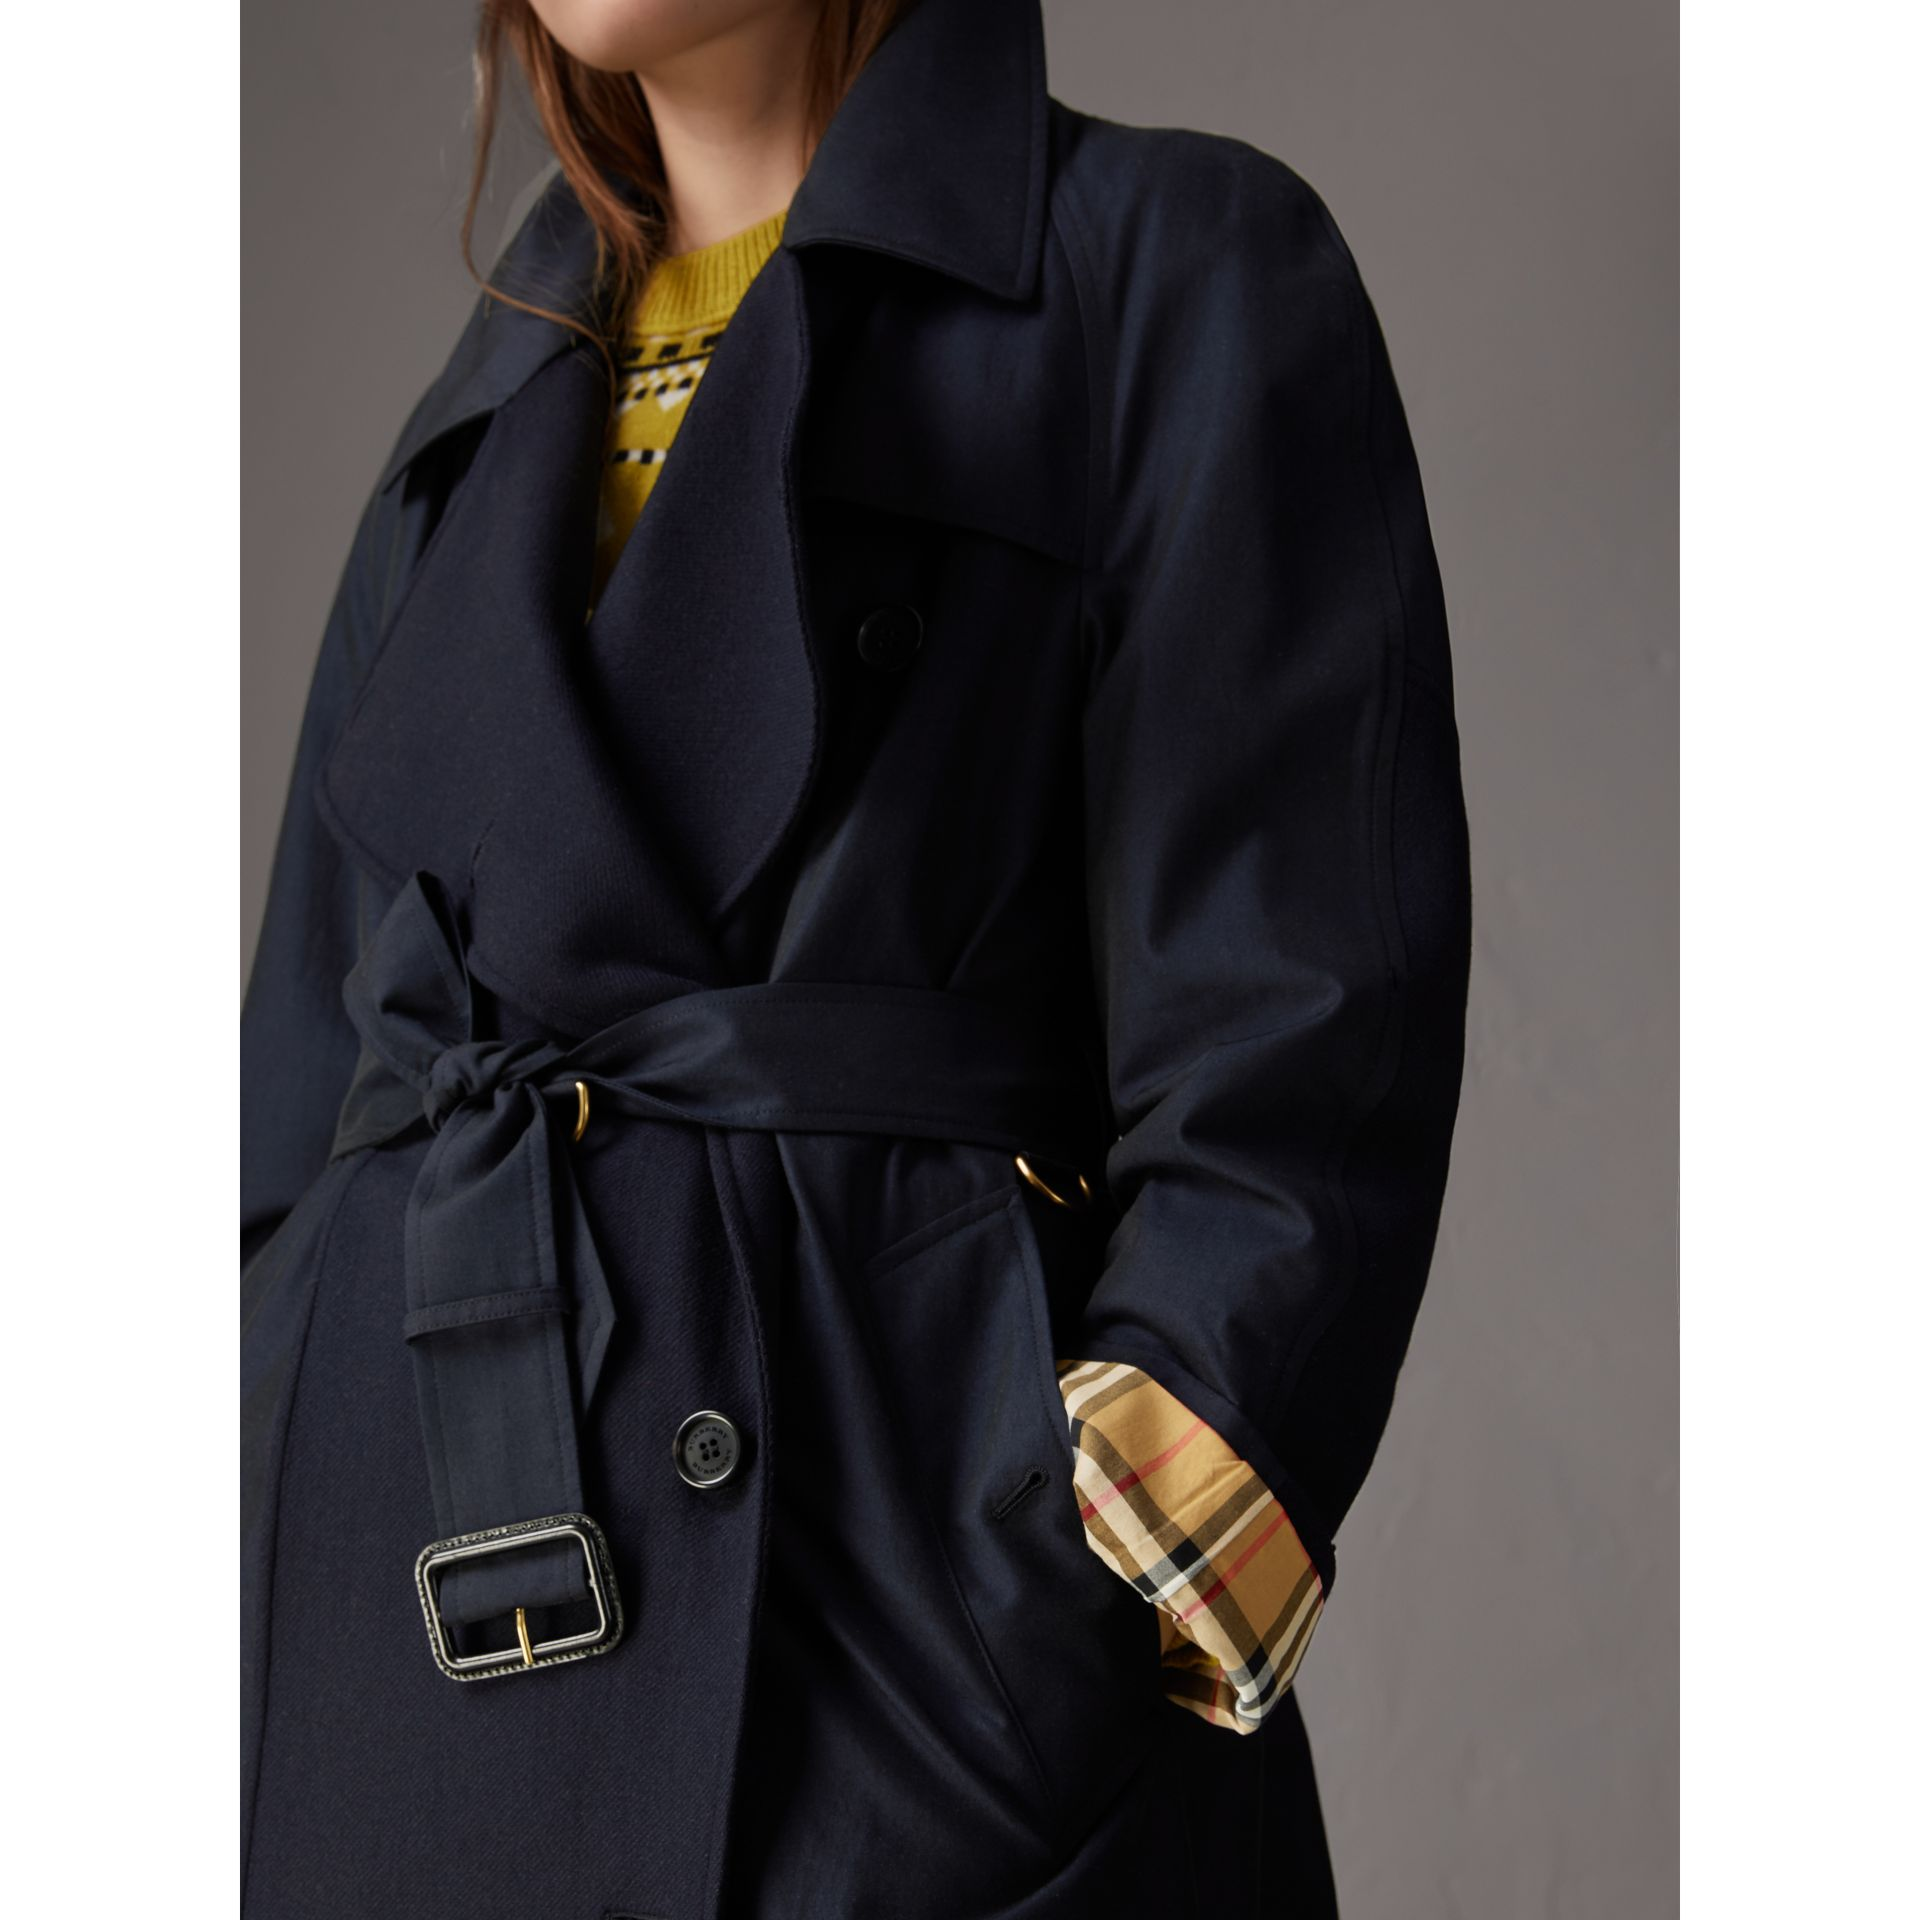 Trench asymétrique en gabardine tropicale (Bleu Carbone) - Femme | Burberry - photo de la galerie 4